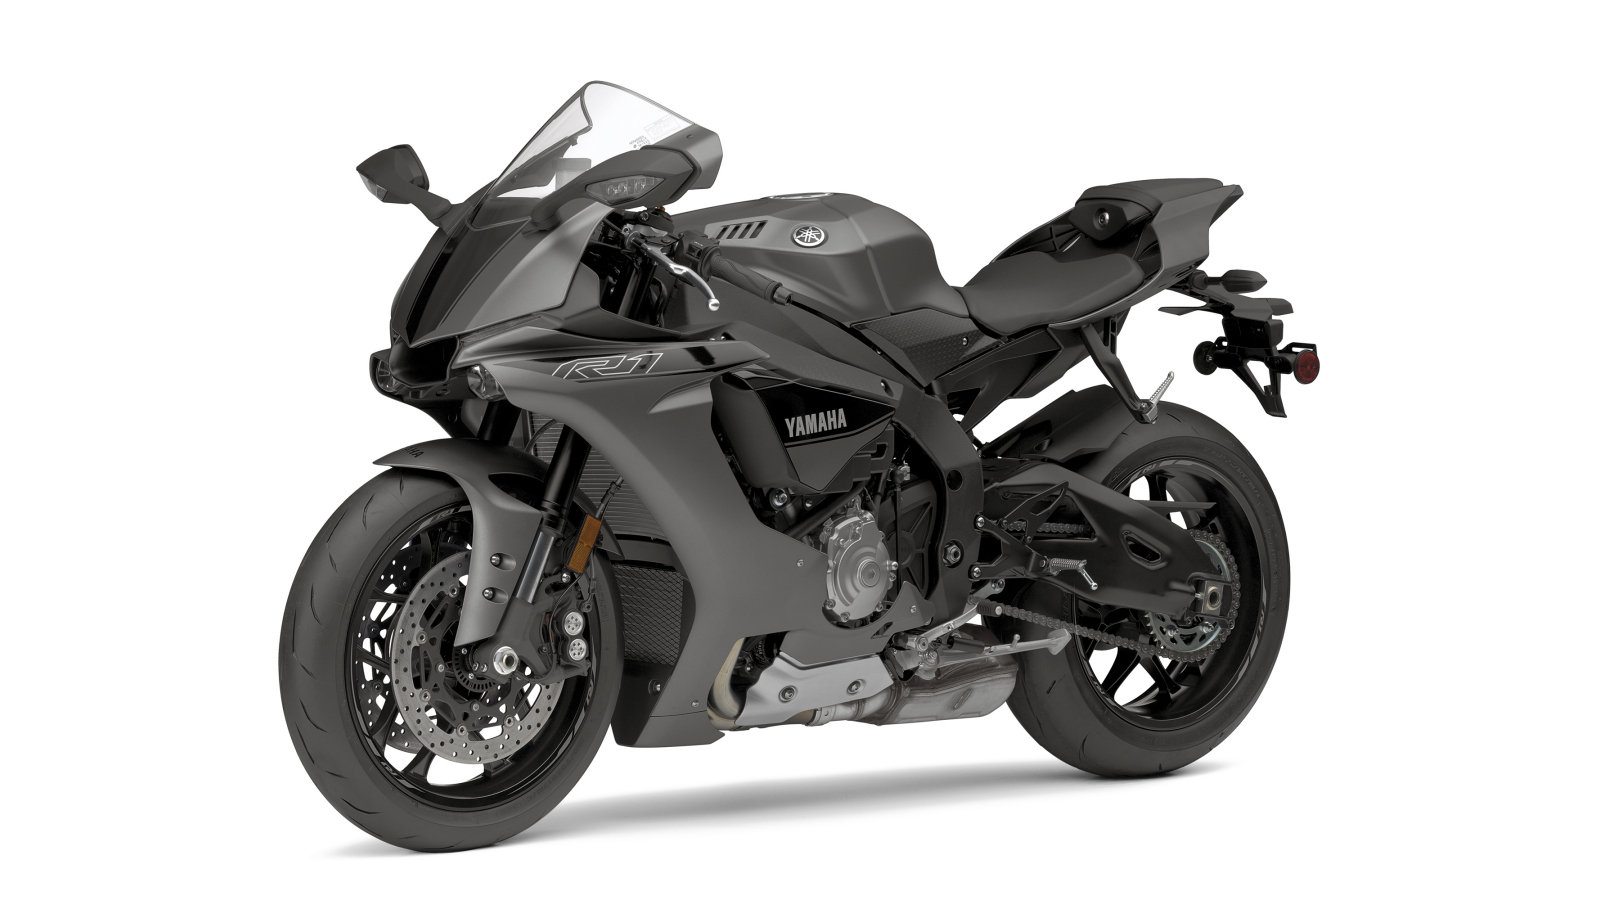 2016 yamaha yzf r1 yzf r1s yzf r1m picture 680871 motorcycle review top speed. Black Bedroom Furniture Sets. Home Design Ideas